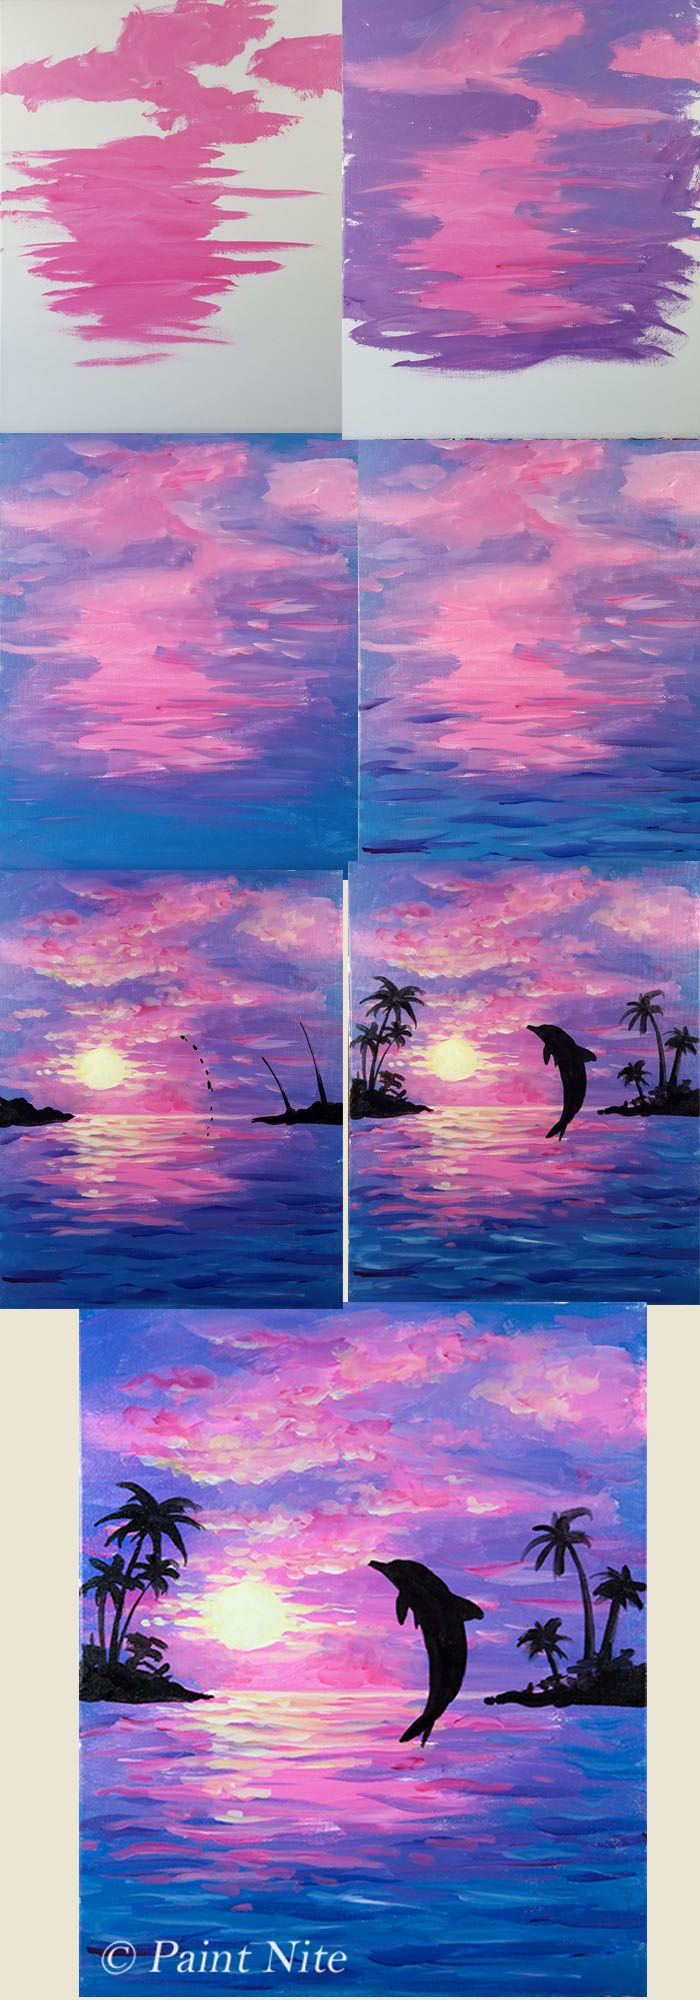 Best 25 beginner painting ideas on pinterest sunset for Watercolor ideas easy